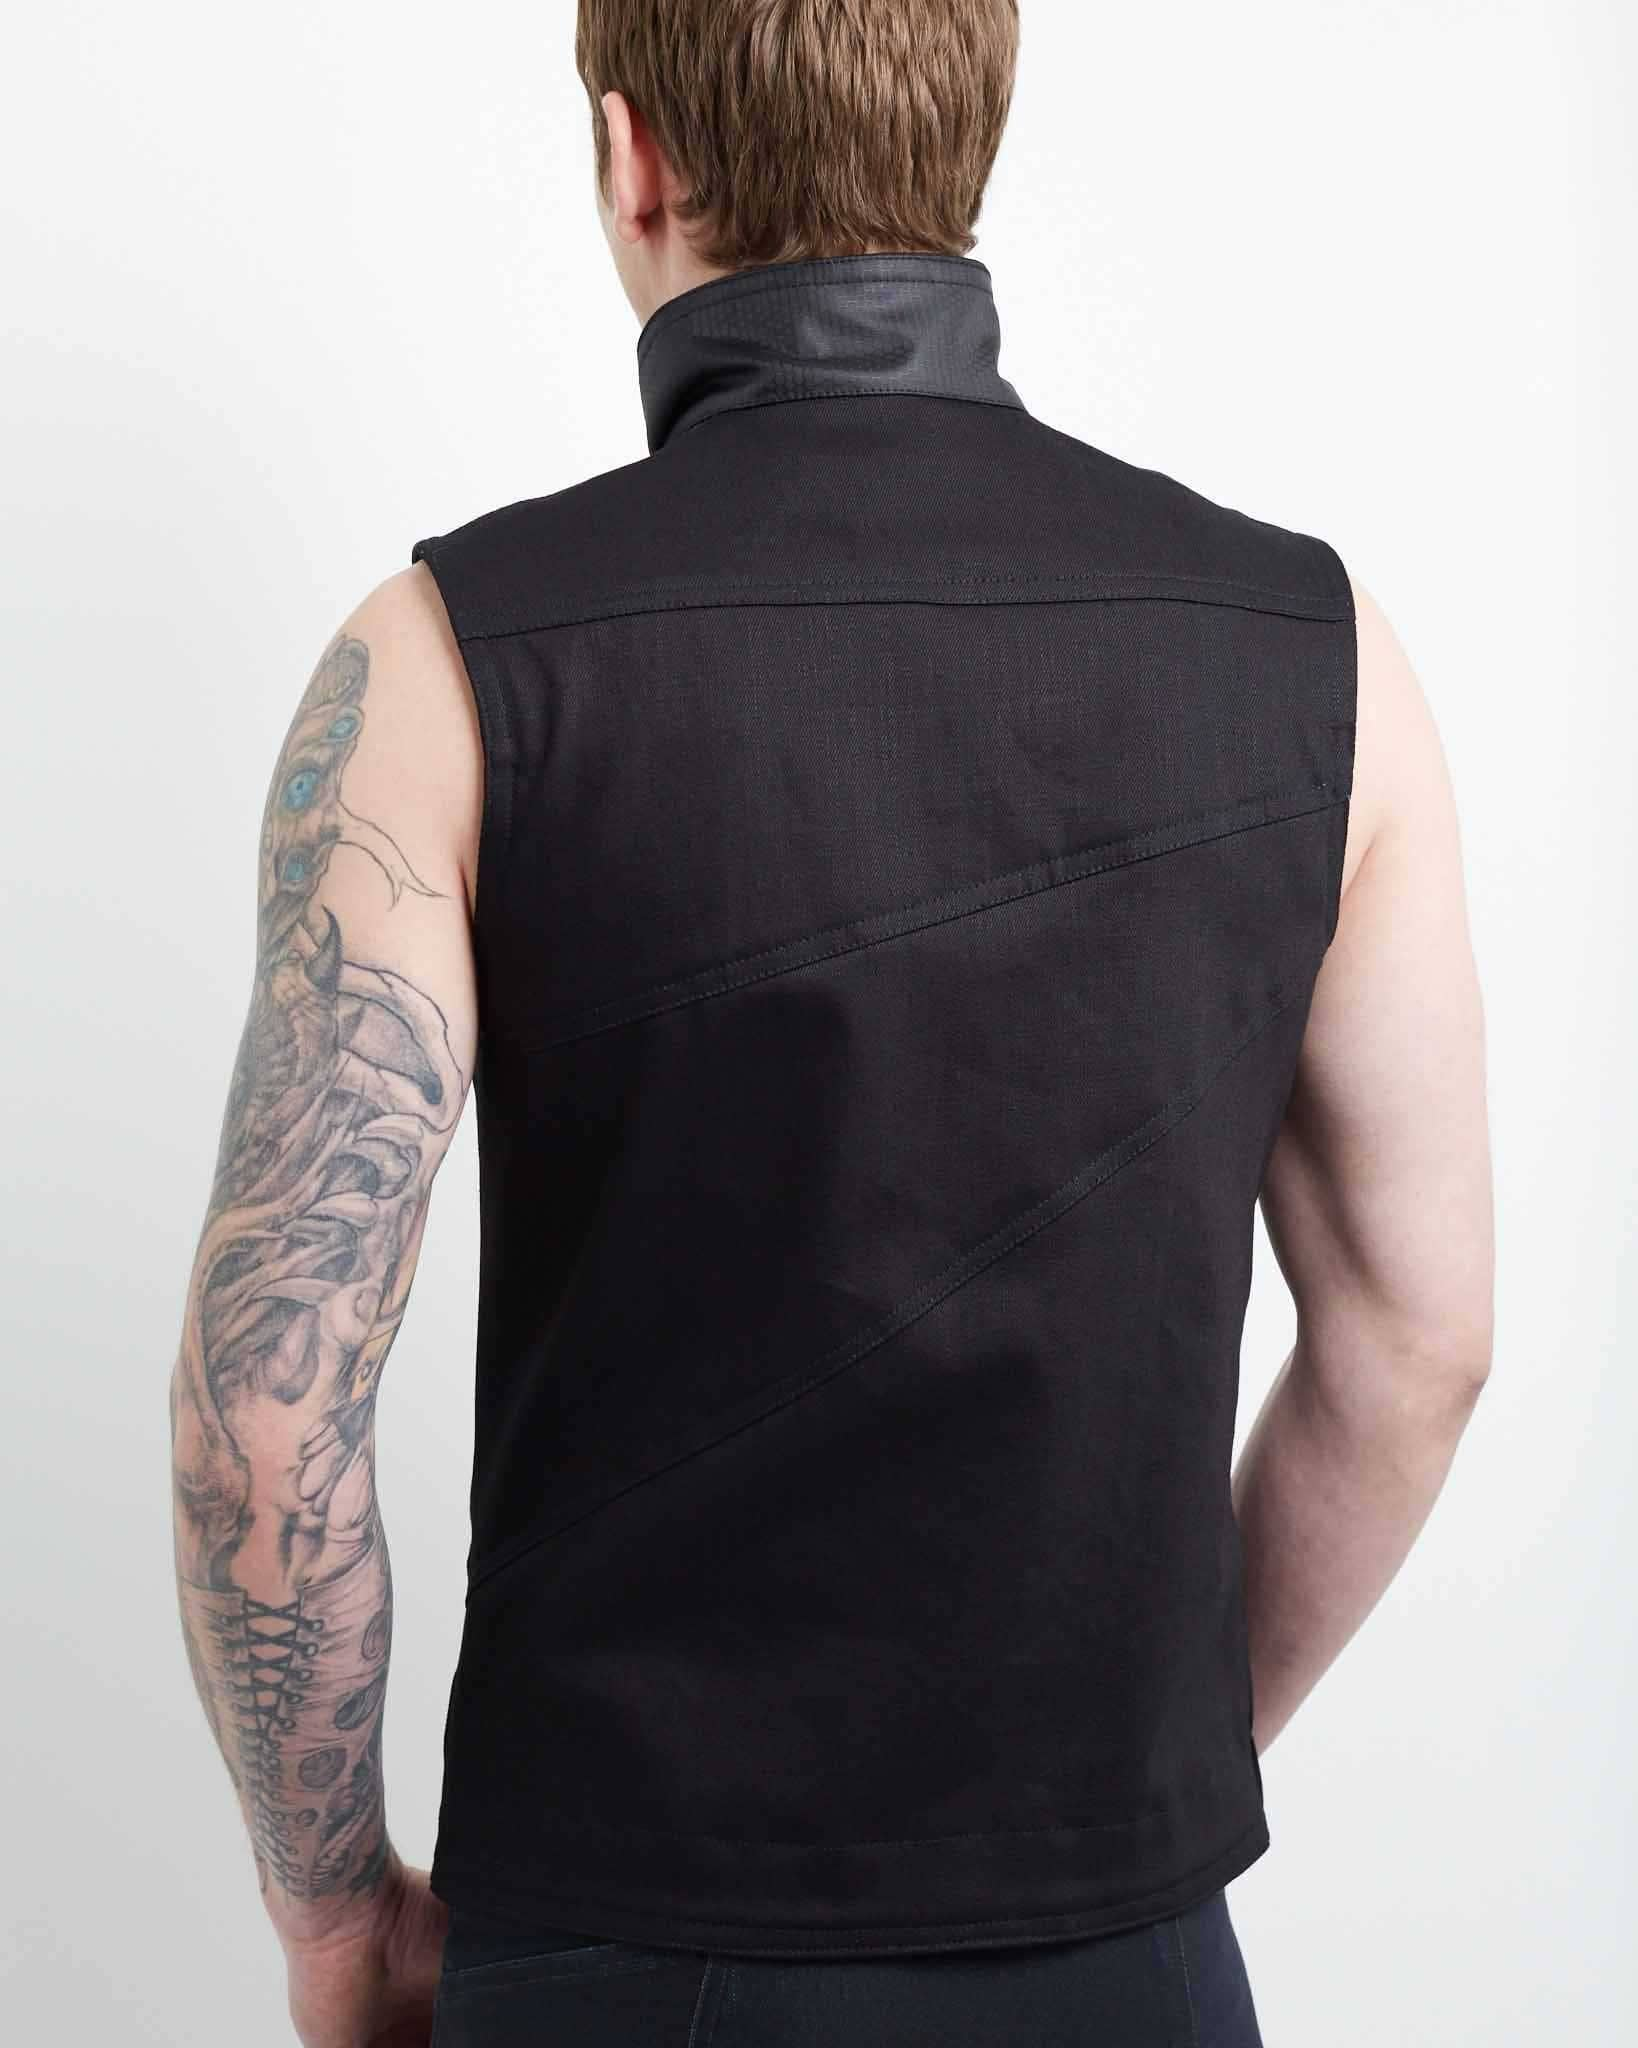 clean, edgy looking mens vest with cyberpunk aesthetic